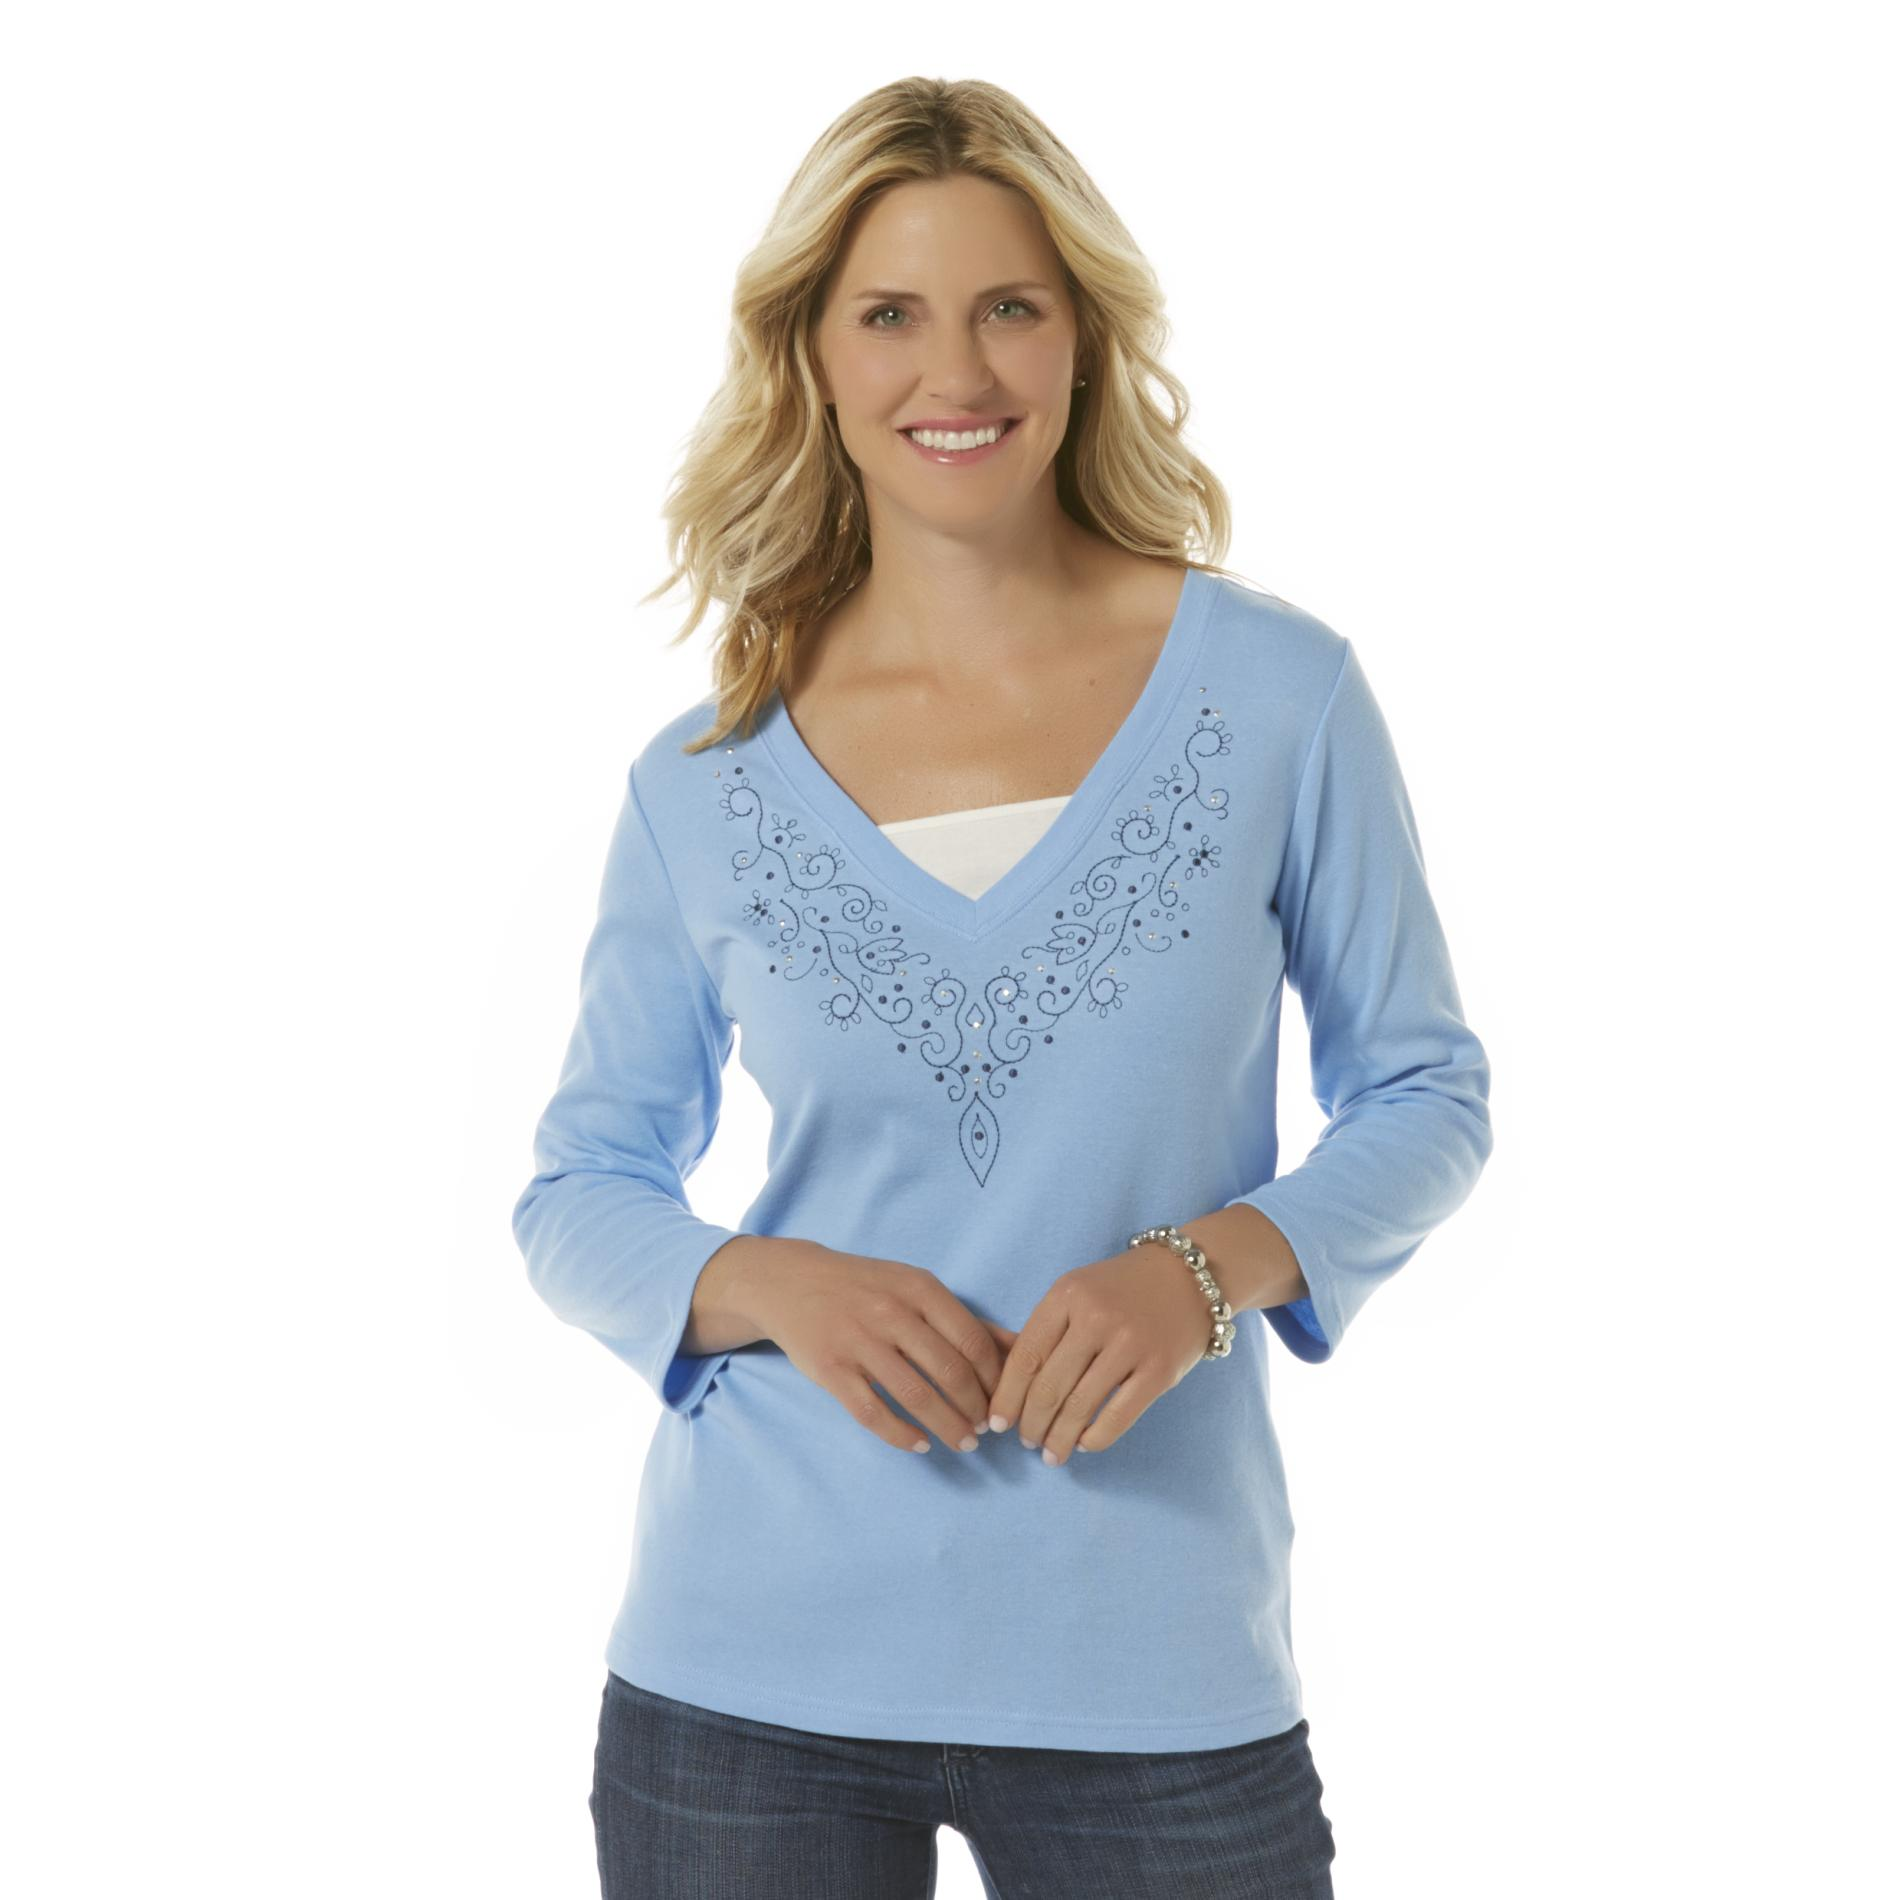 Women's Layered-Look Embellished Top